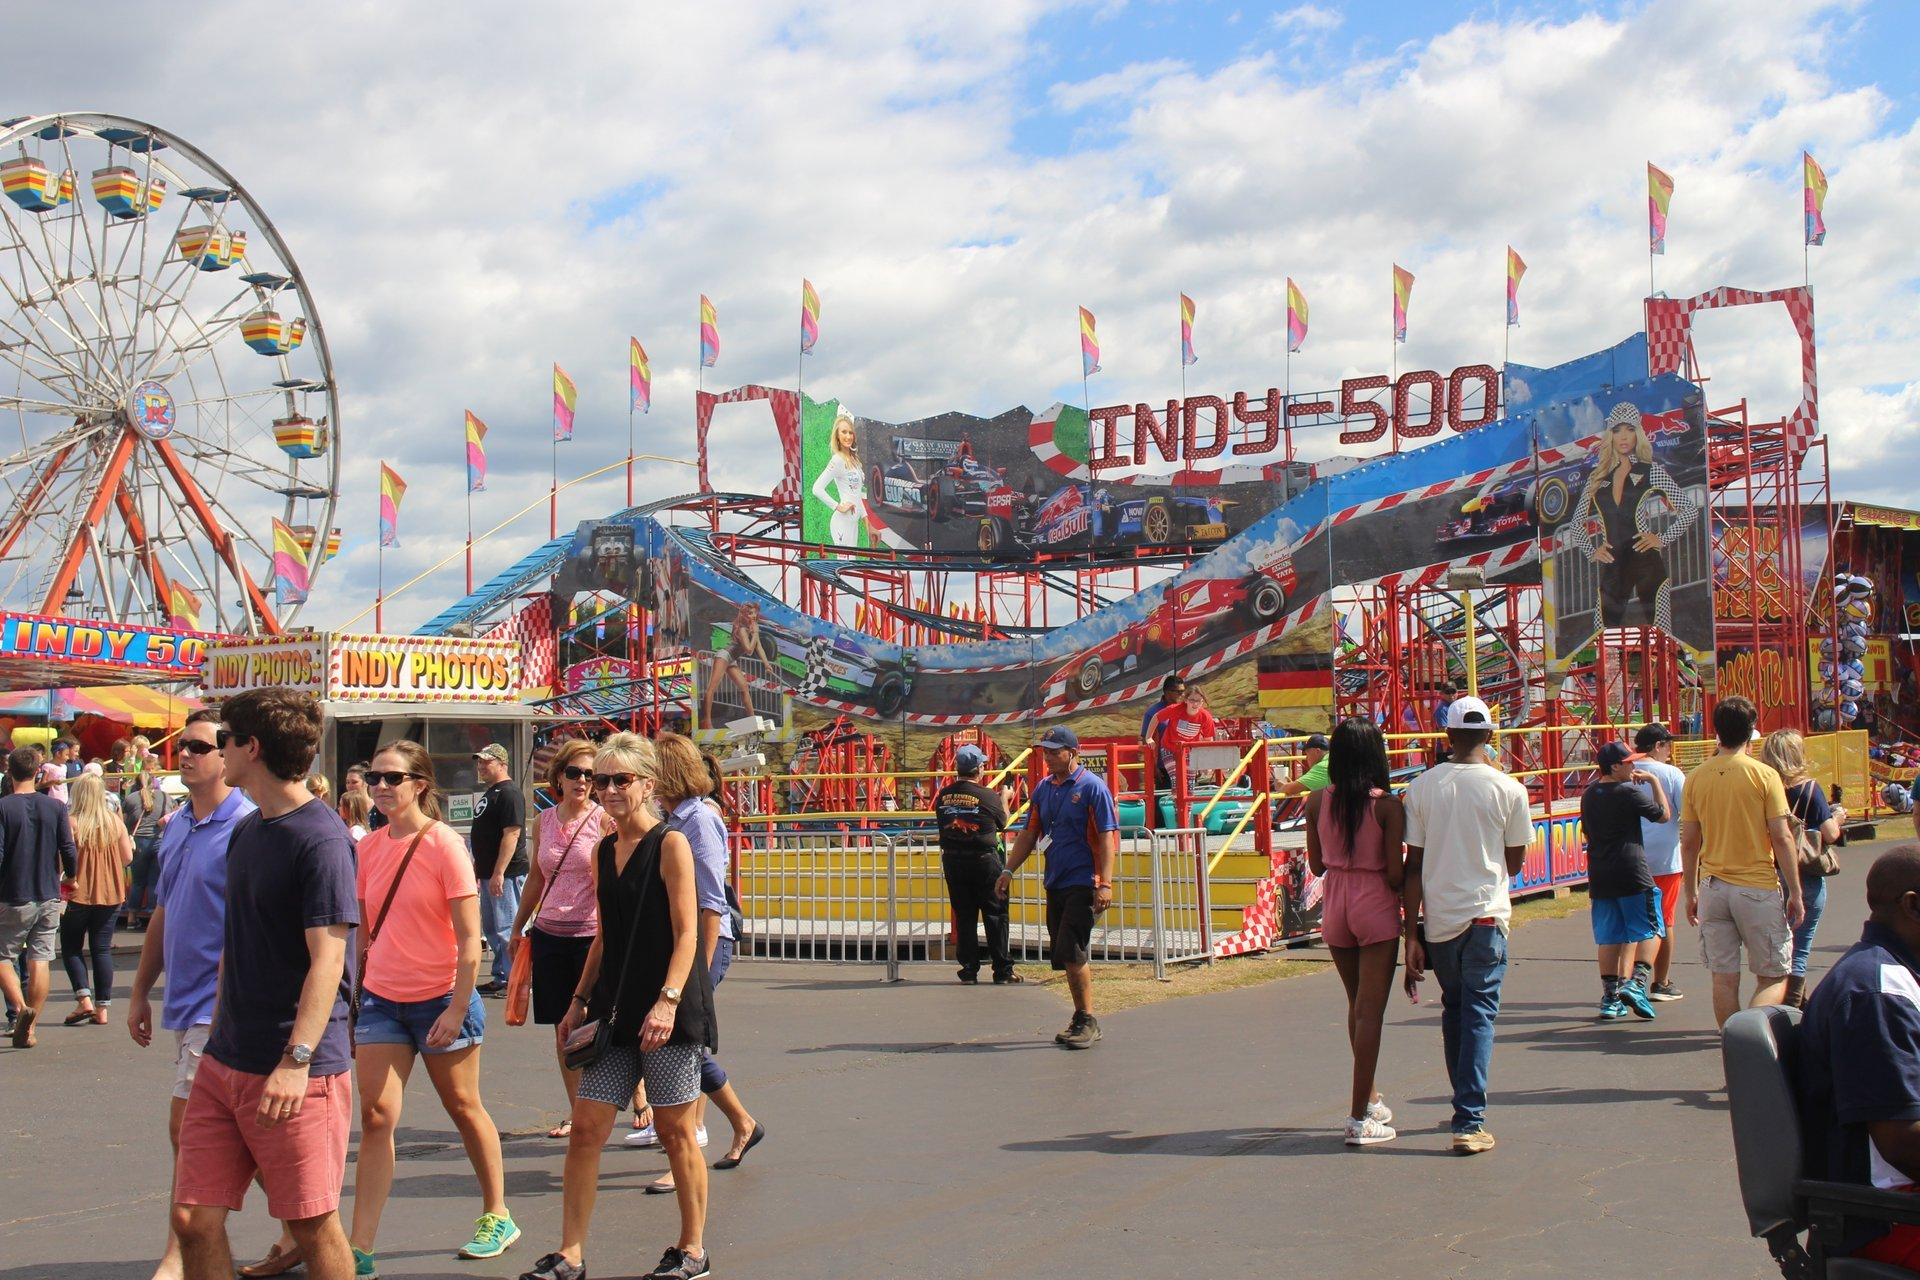 Georgia National Fair in Georgia - Best Season 2020